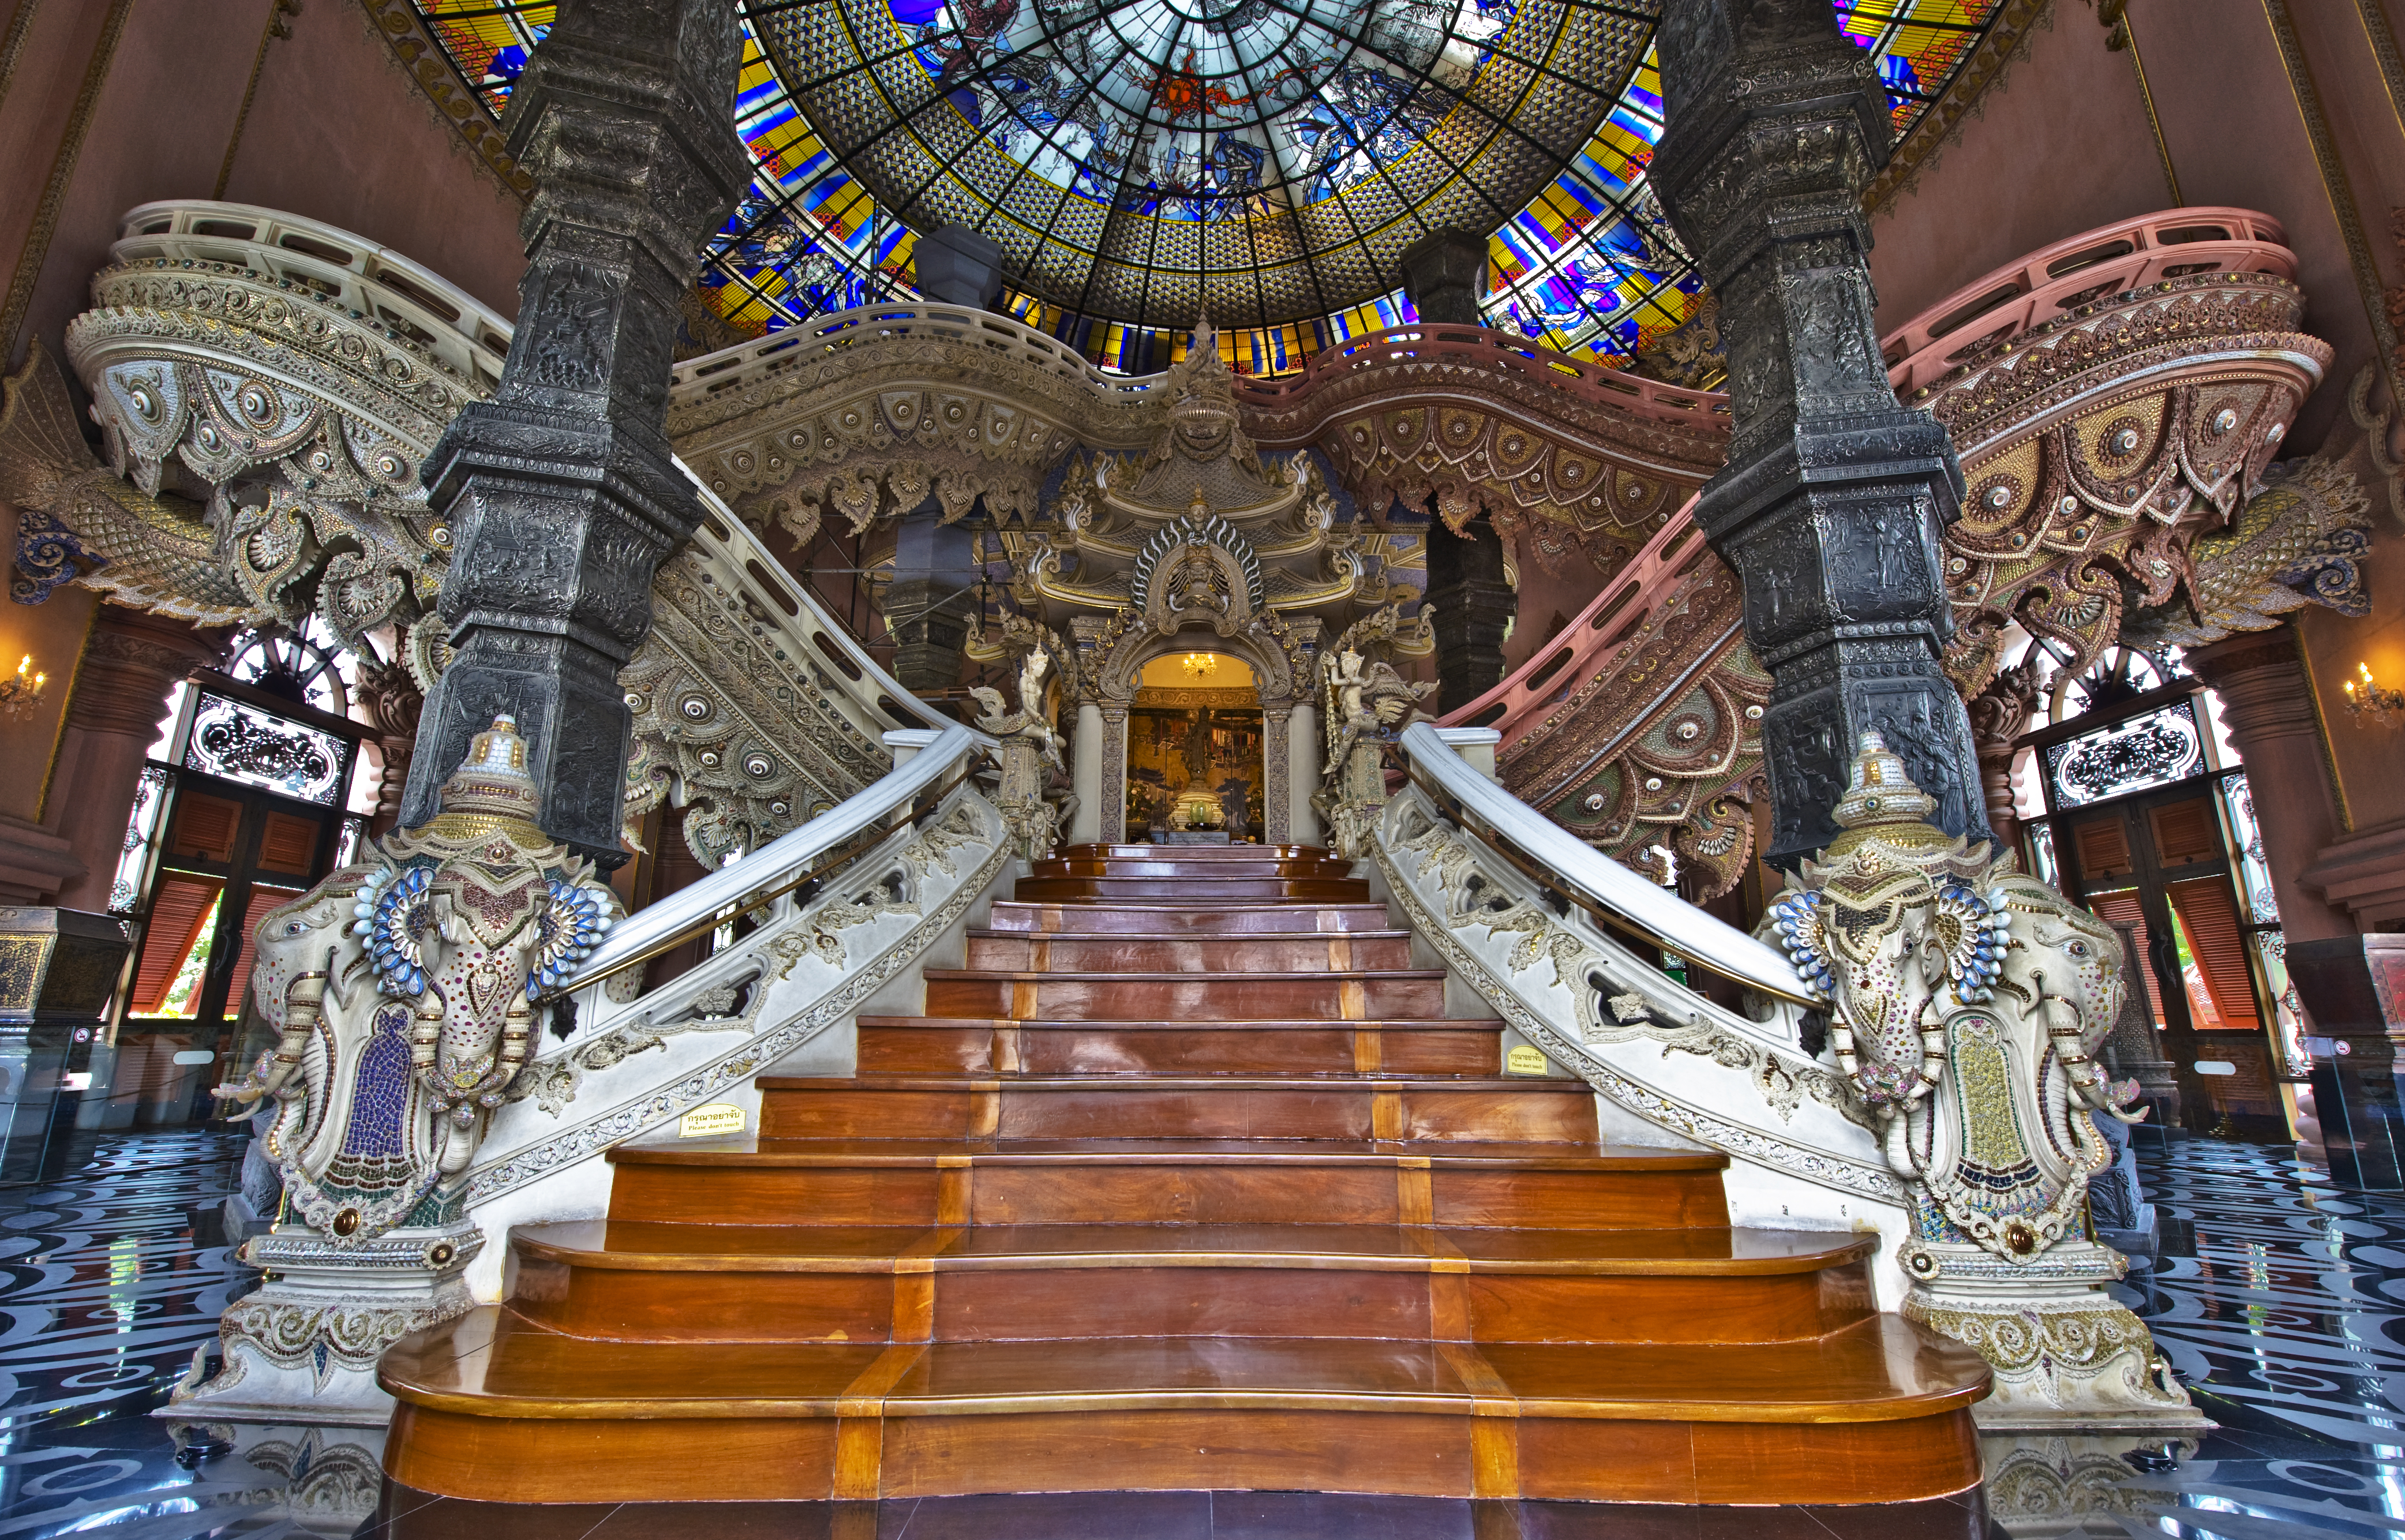 Interior of the Erawan Museum